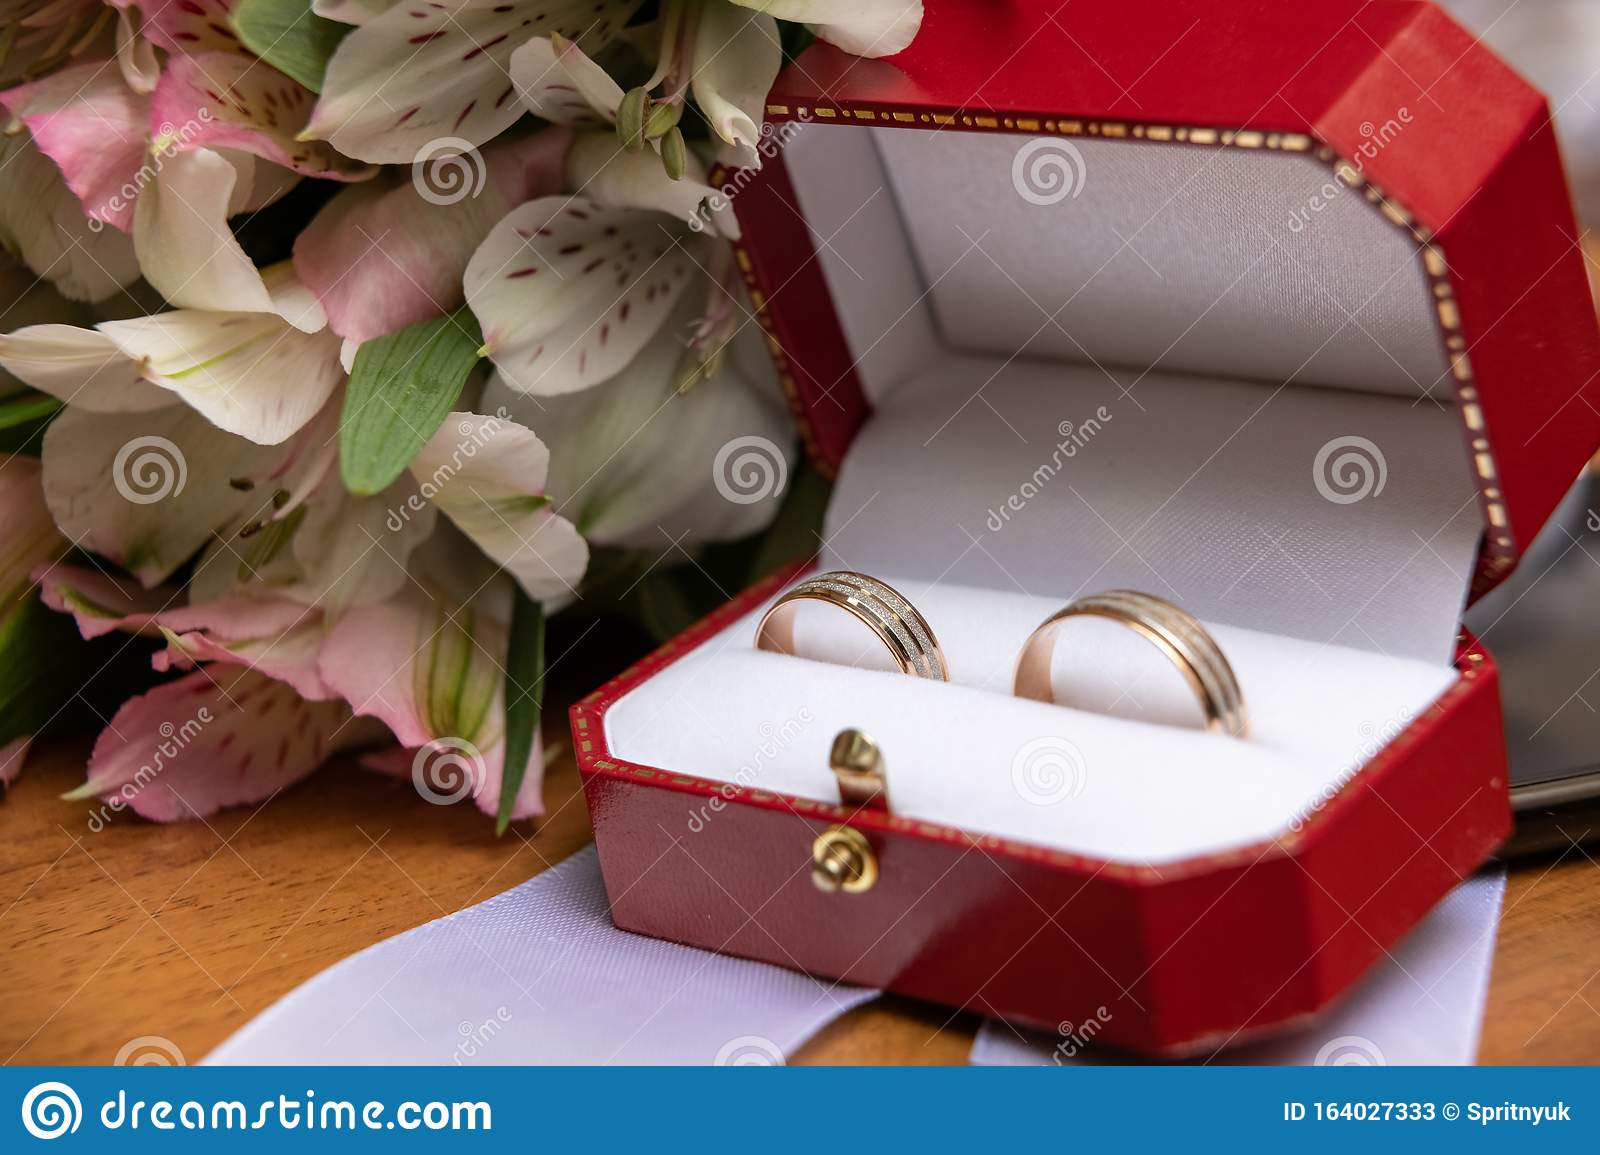 Bouquet With Beautiful Roses And Wedding Rings Stock Image Image Of Beautiful Antique 164027333